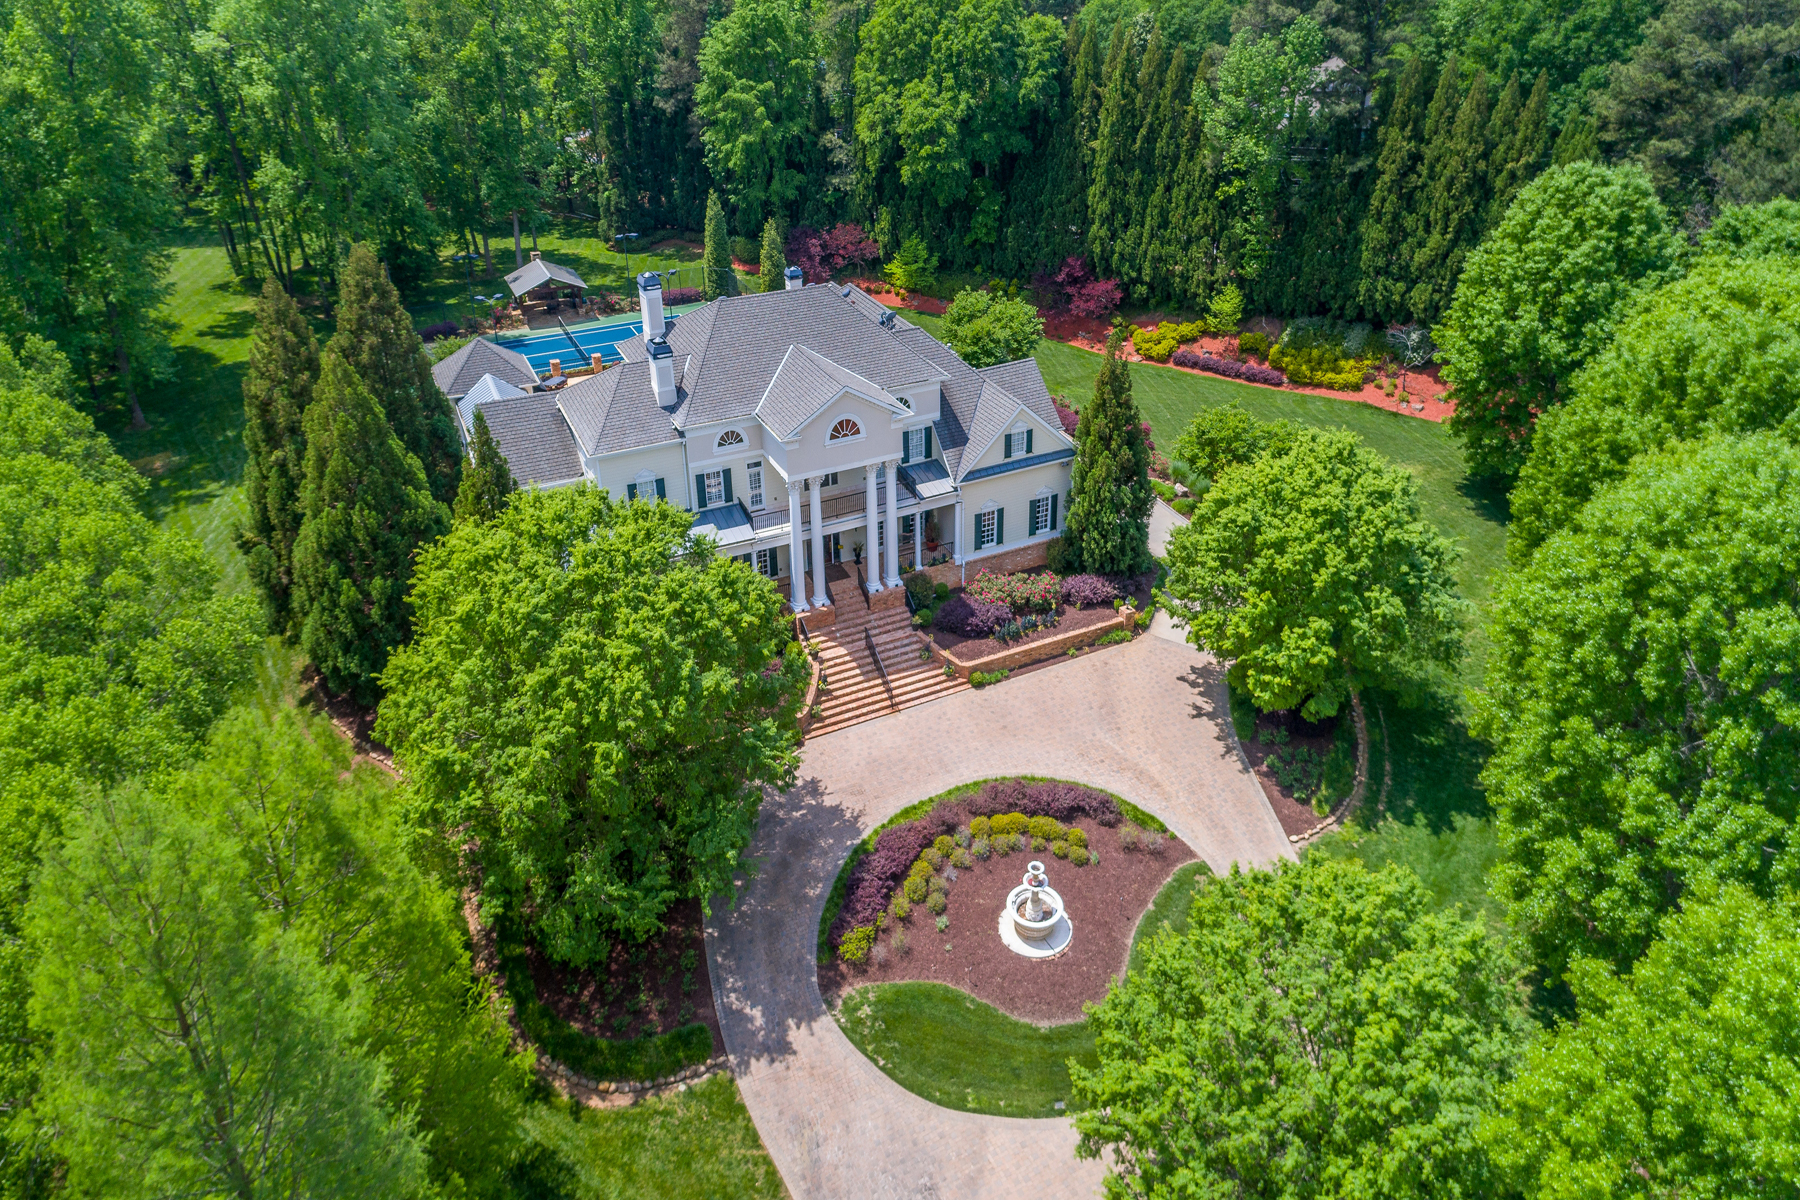 Single Family Home for Sale at 3940 Paces Manor 3940 Paces Manor Atlanta, Georgia 30339 United States